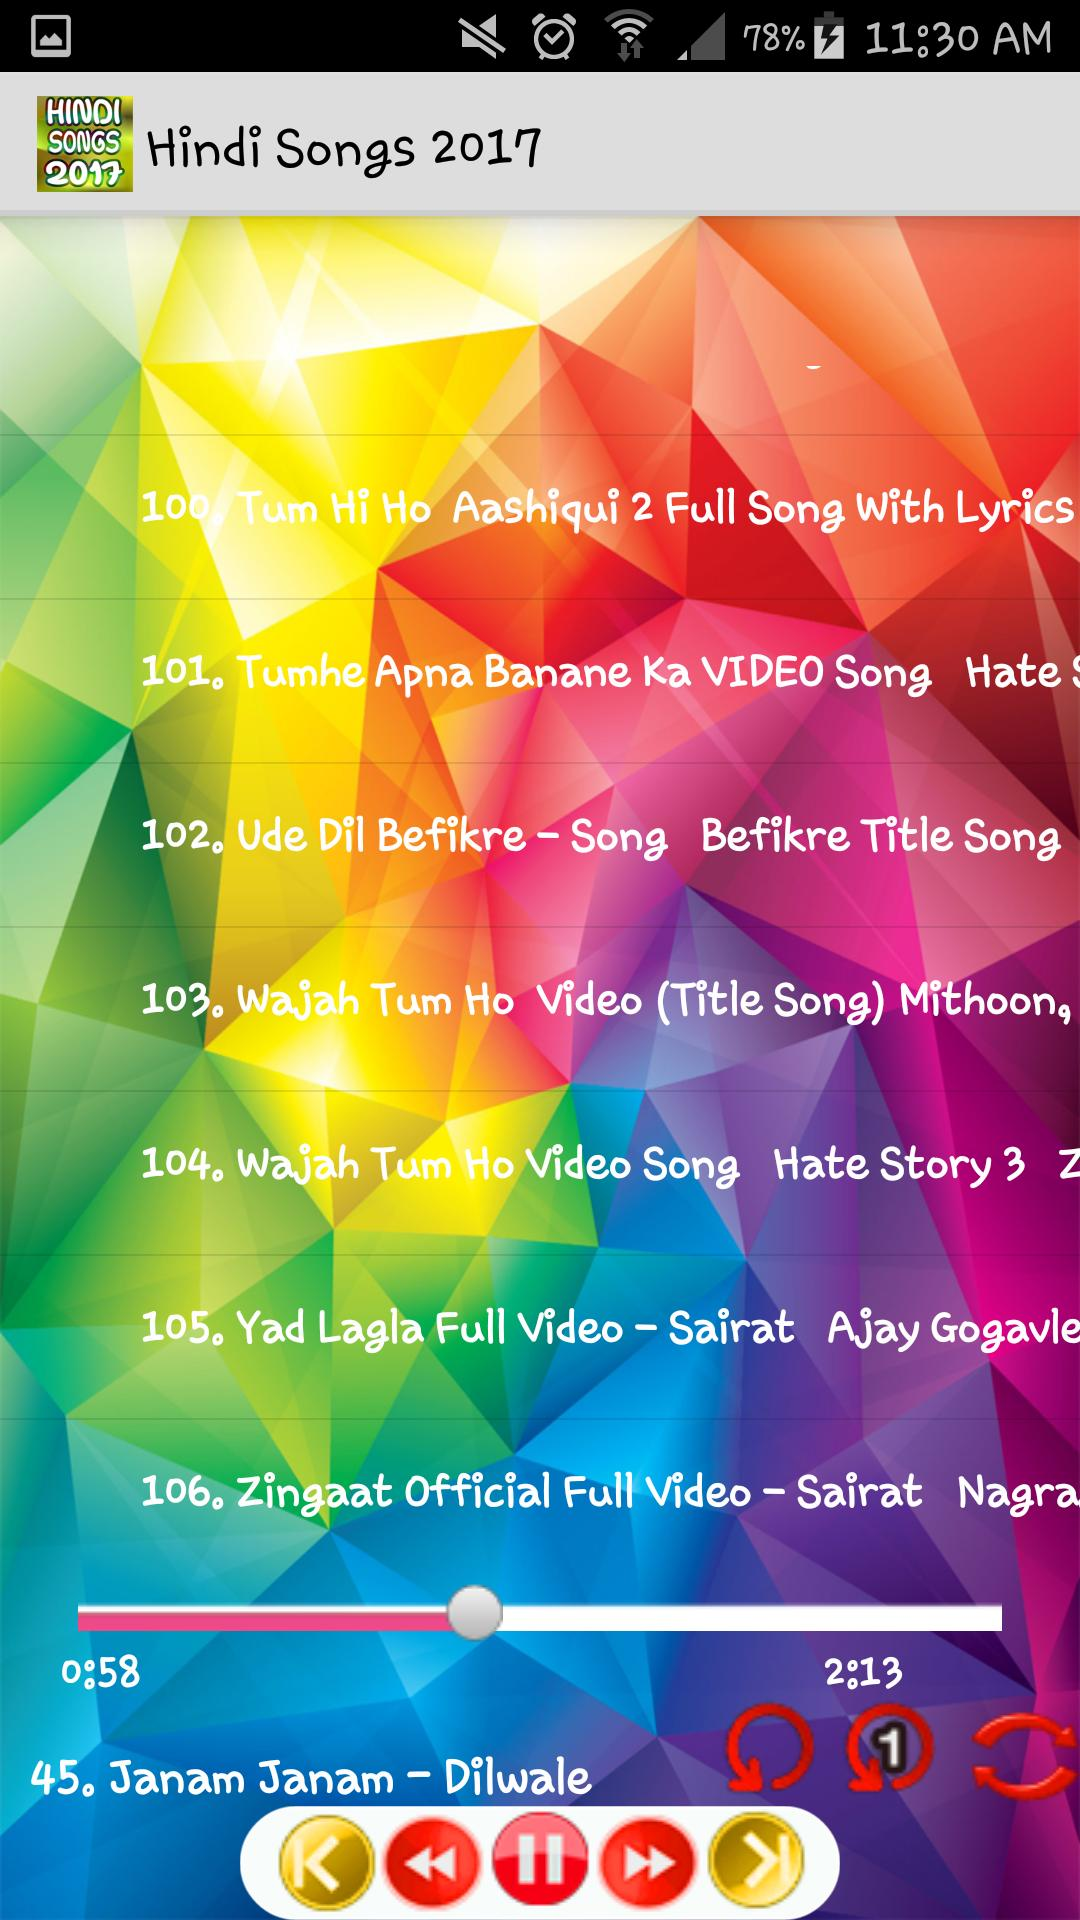 Hindi Songs 2017 Mp3 Free For Android Apk Download